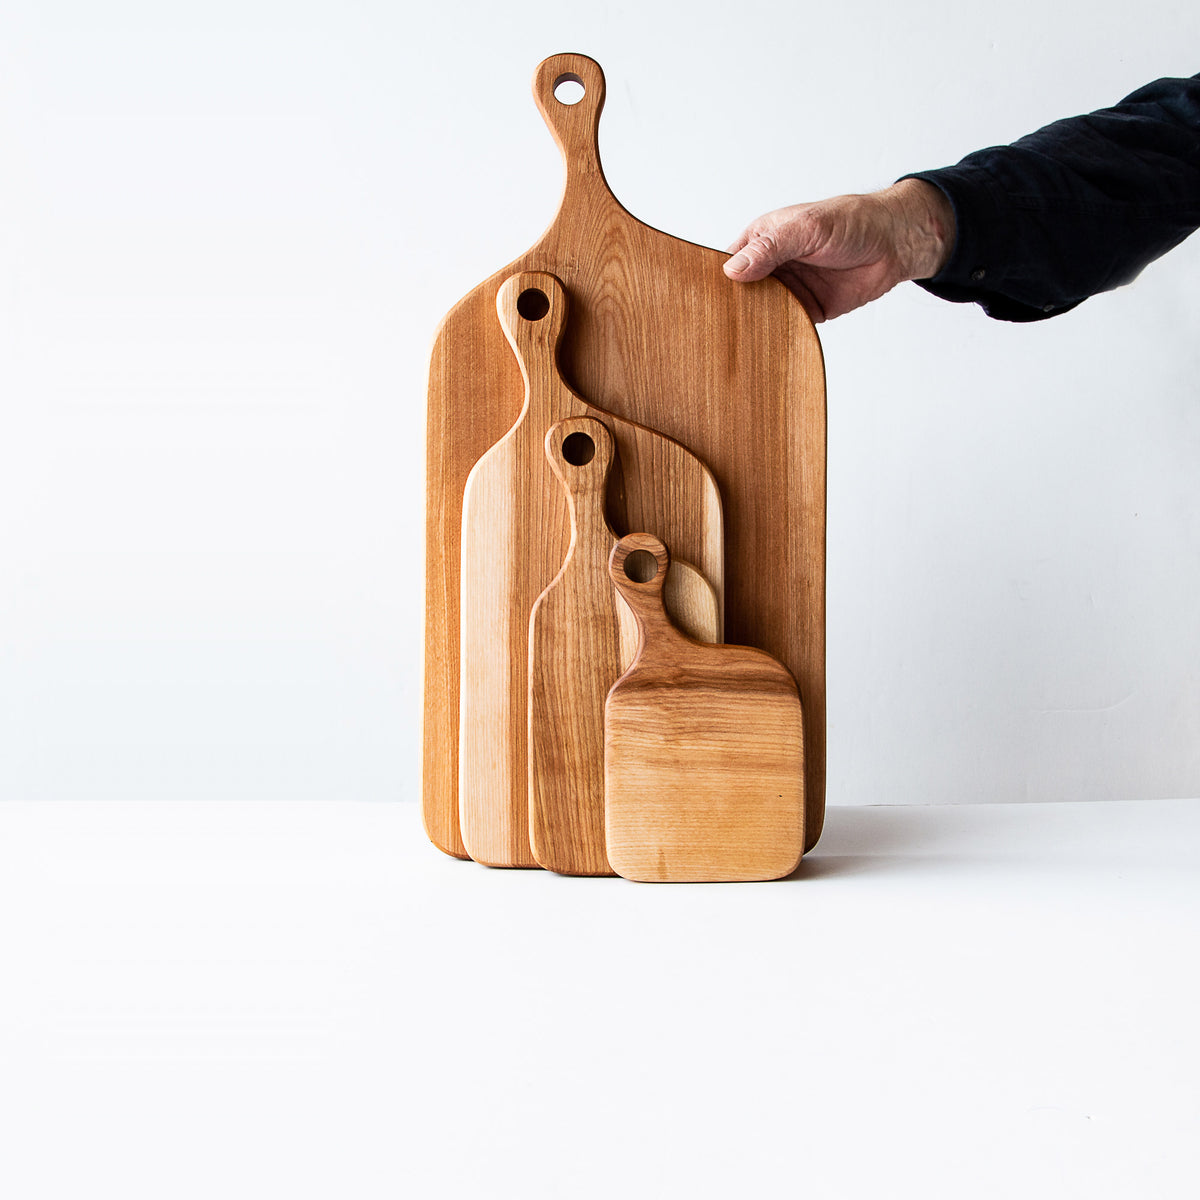 Meipel Handmade Wooden Boards Collection - Sold by Chic & Basta